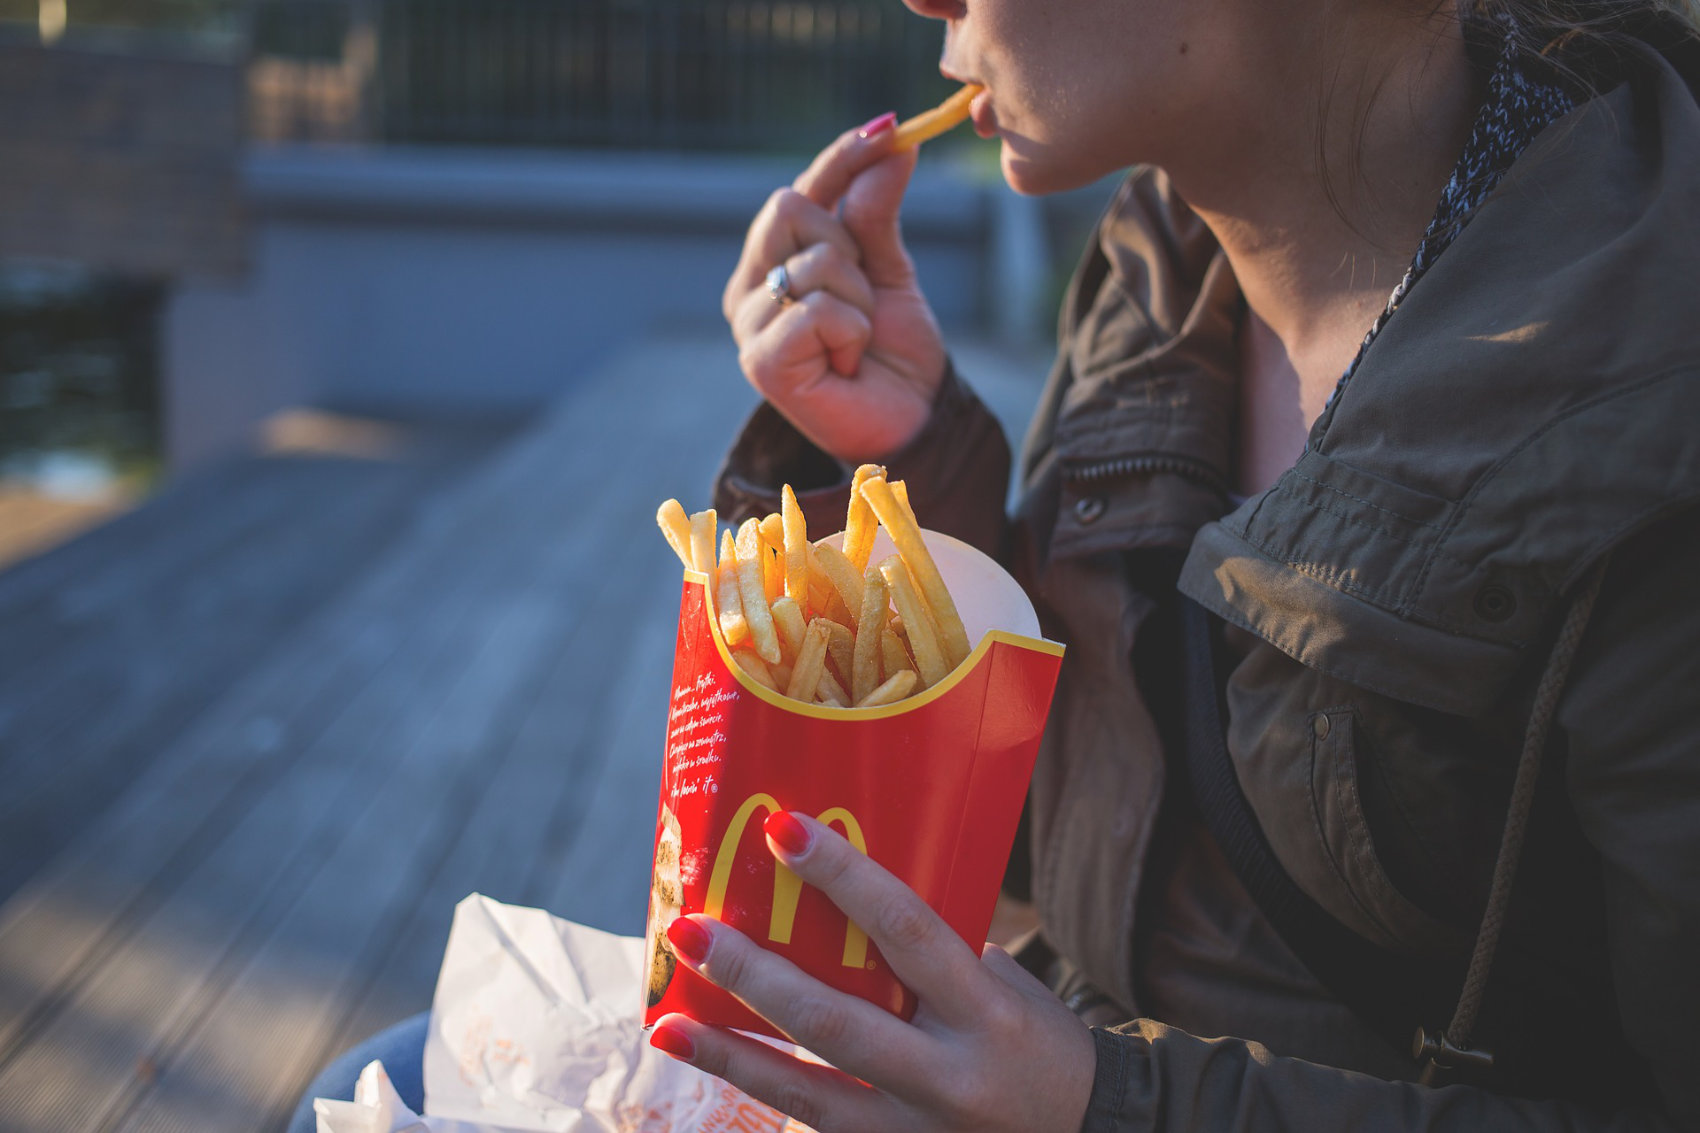 McDonald's French Fries - Image by Pexels